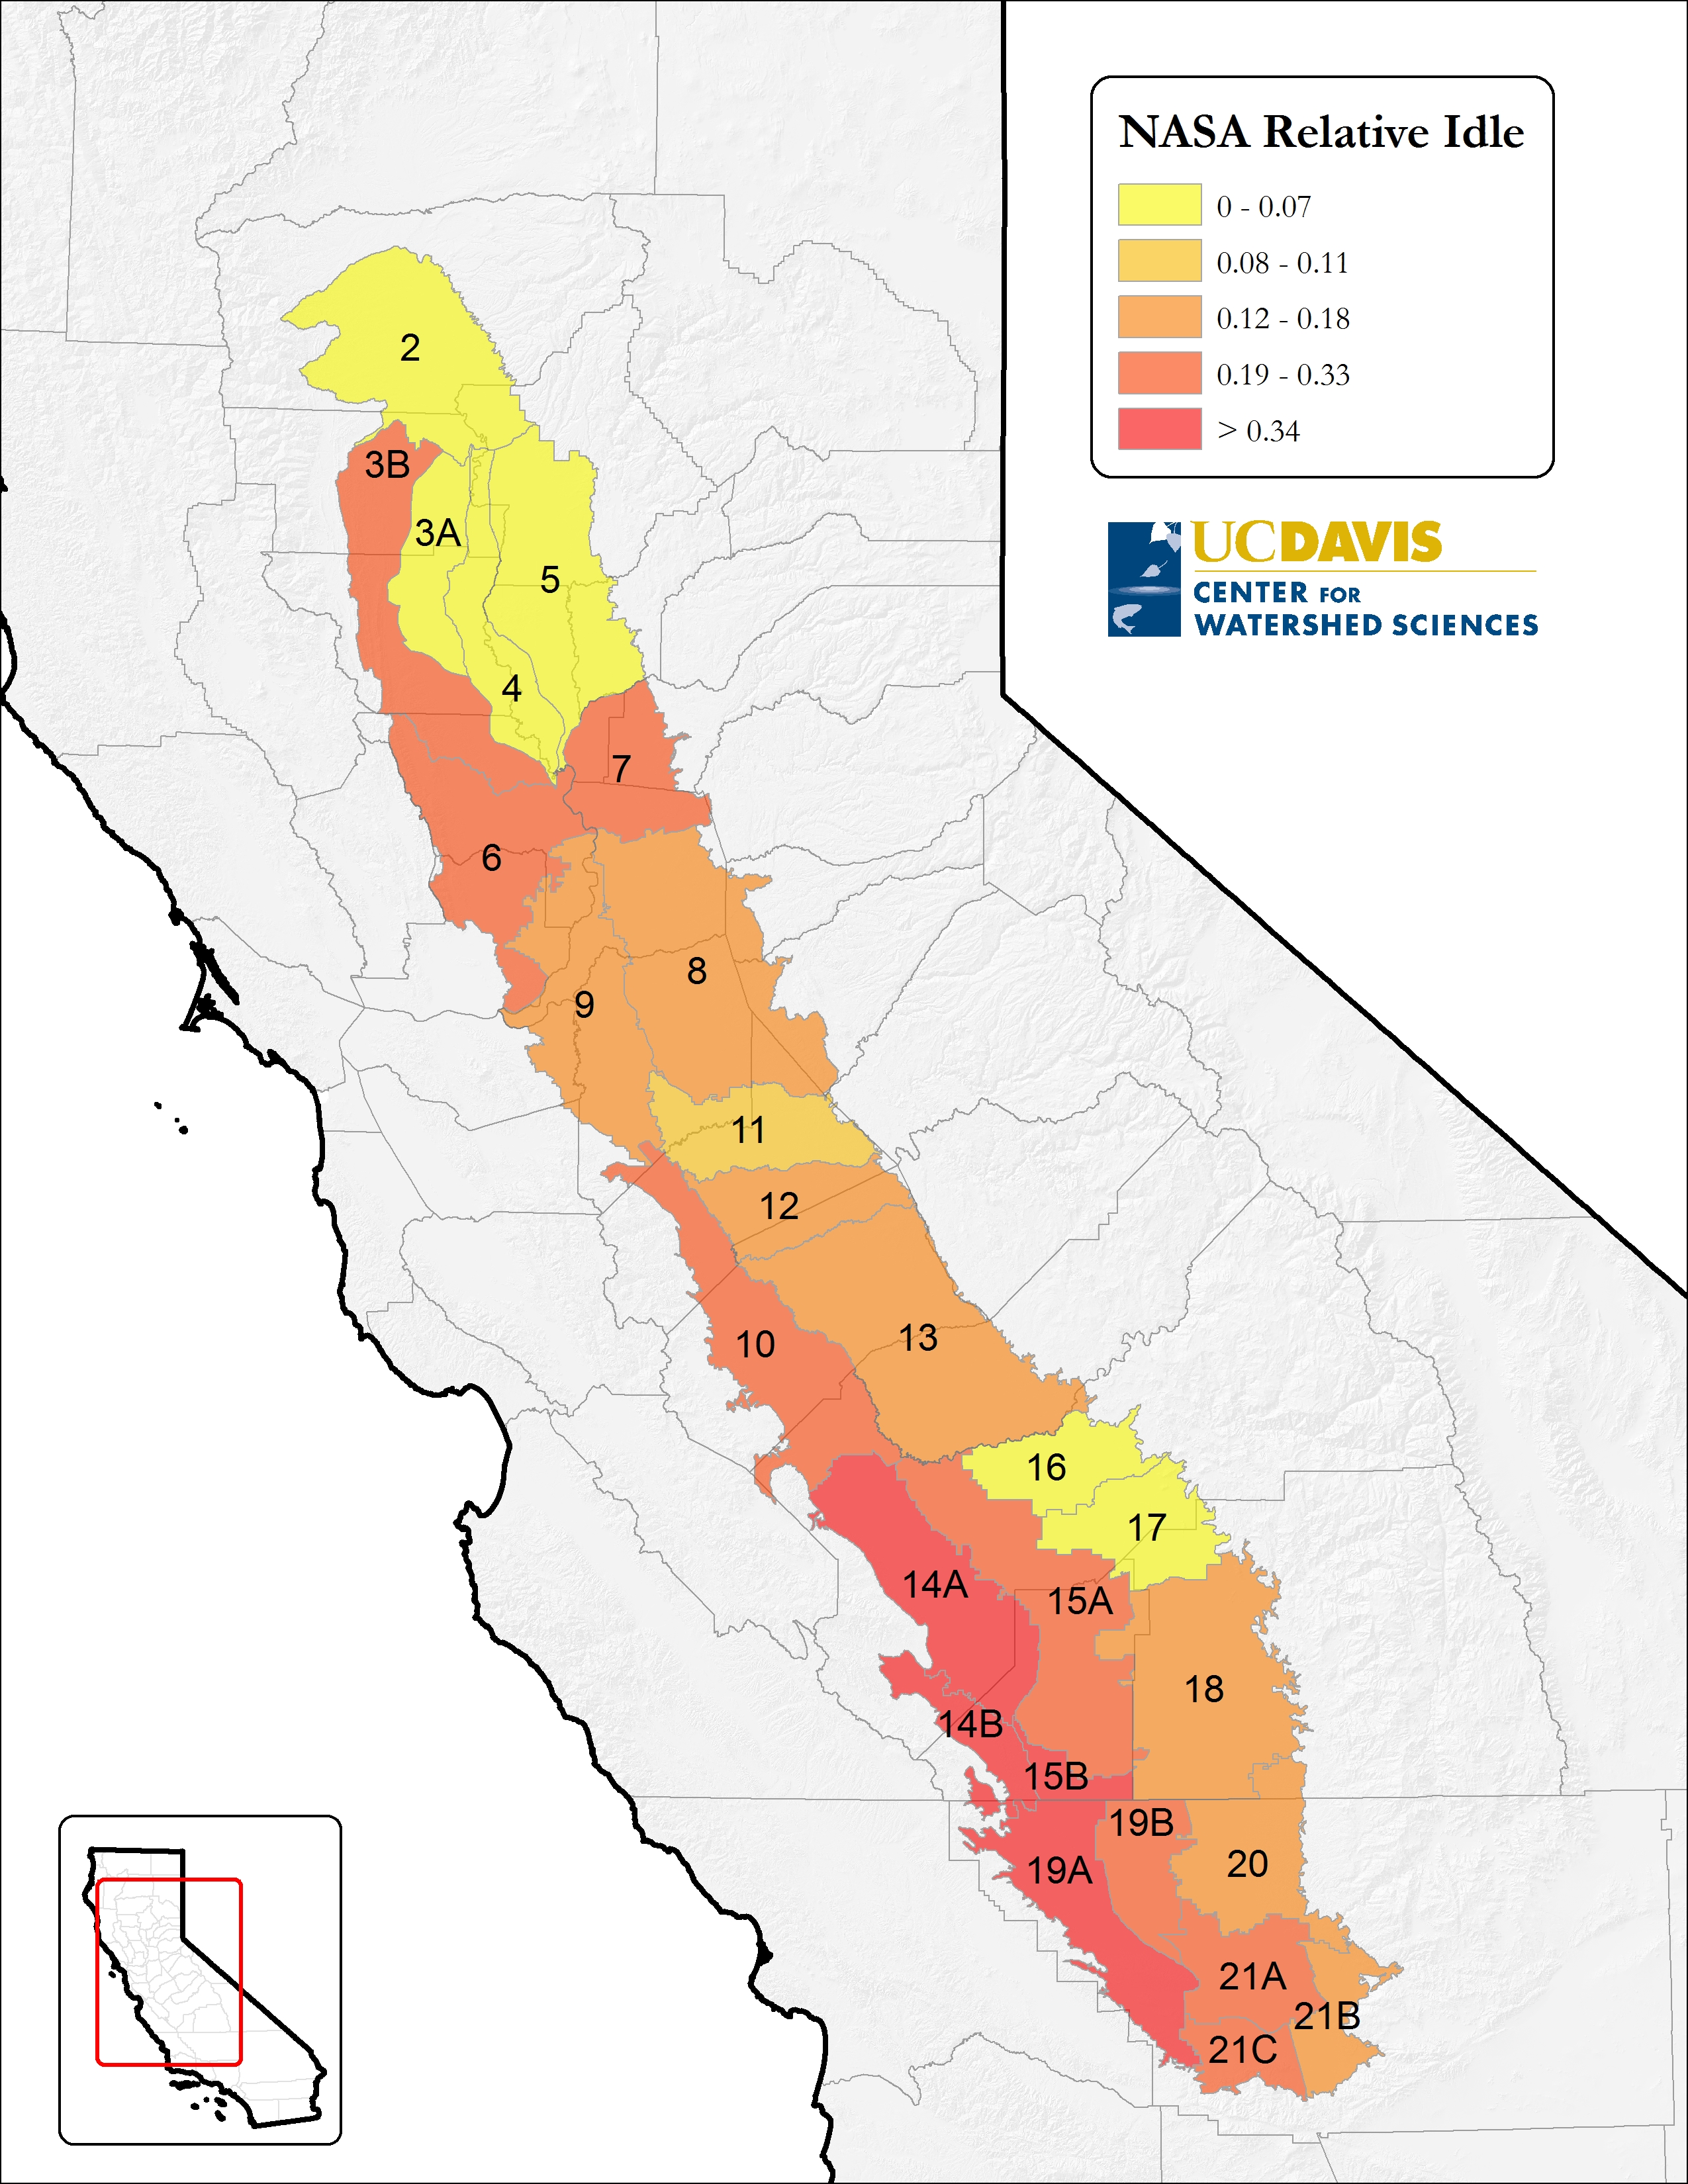 California Waterblog A Biologist Economist Engineer And Simple Engine Diagram Images Pictures Becuo Difference In Idle Central Valley Cropland Between 2014 2011 Relative To The Total Agricultural